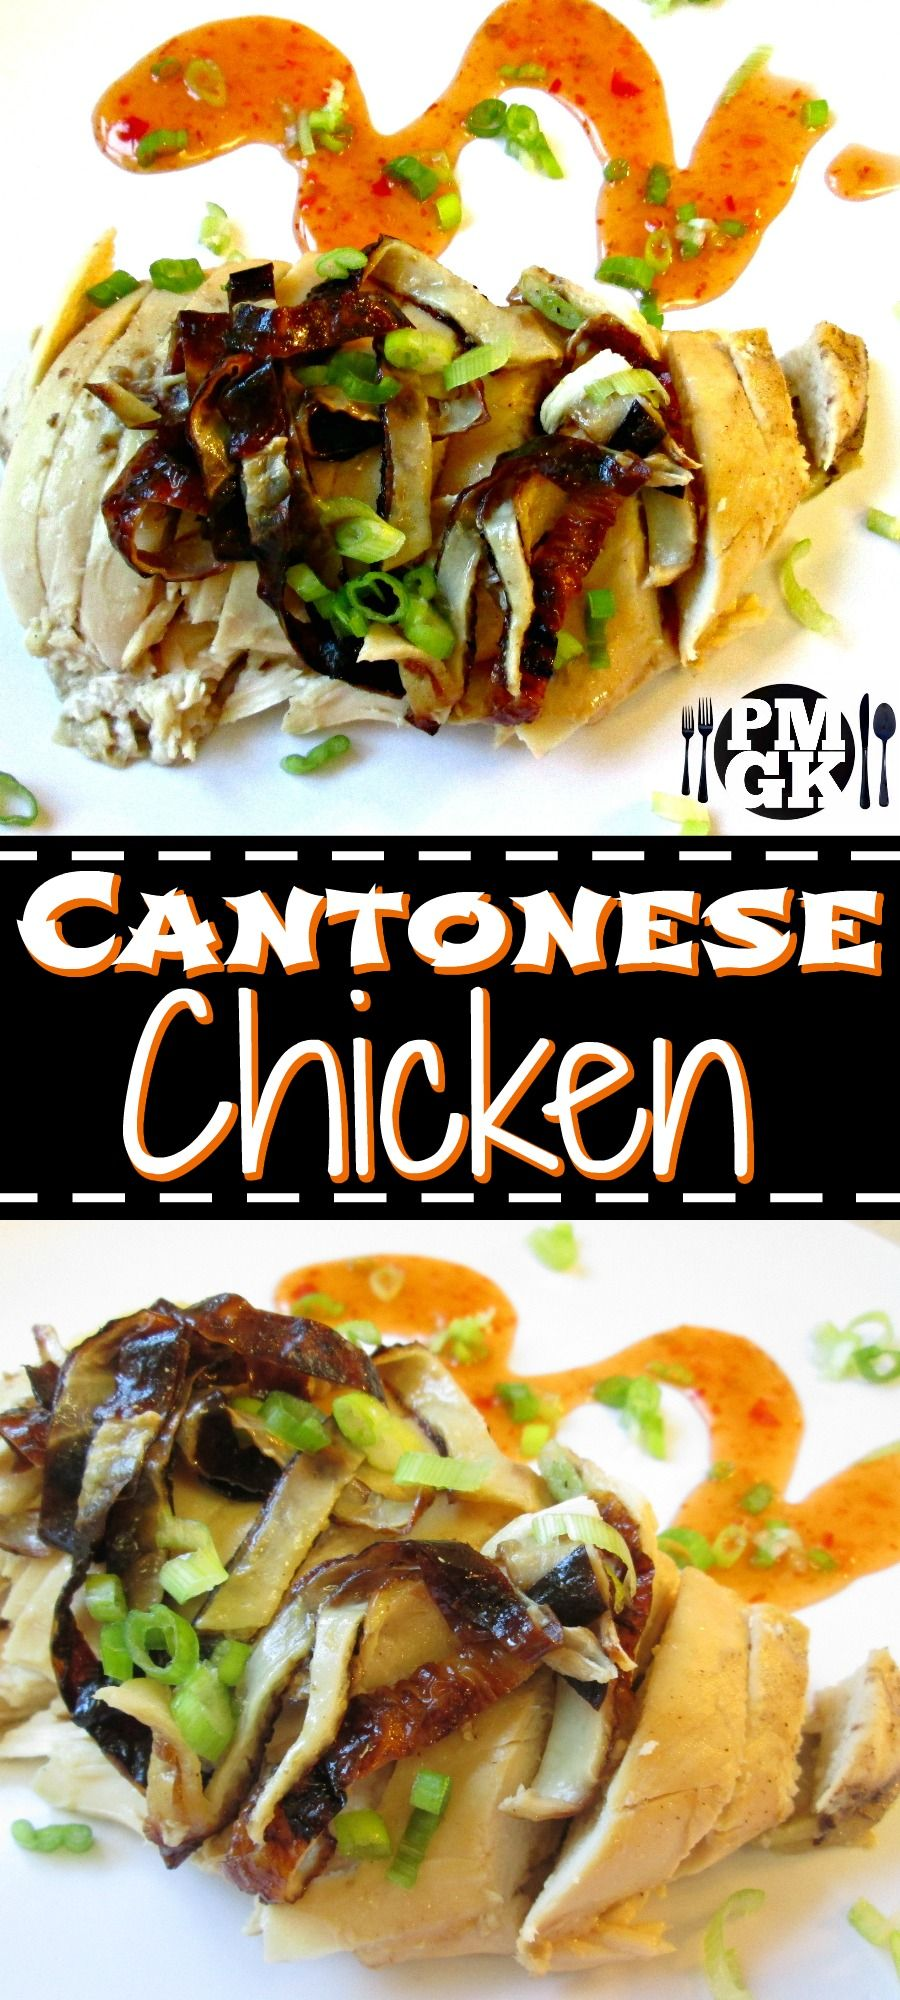 Cantonese chicken roast gourmet asian food recipes and continue looking for a great chicken recipe well this cantonese chicken recipe is for you be sure to watch the short video tutorial forumfinder Image collections